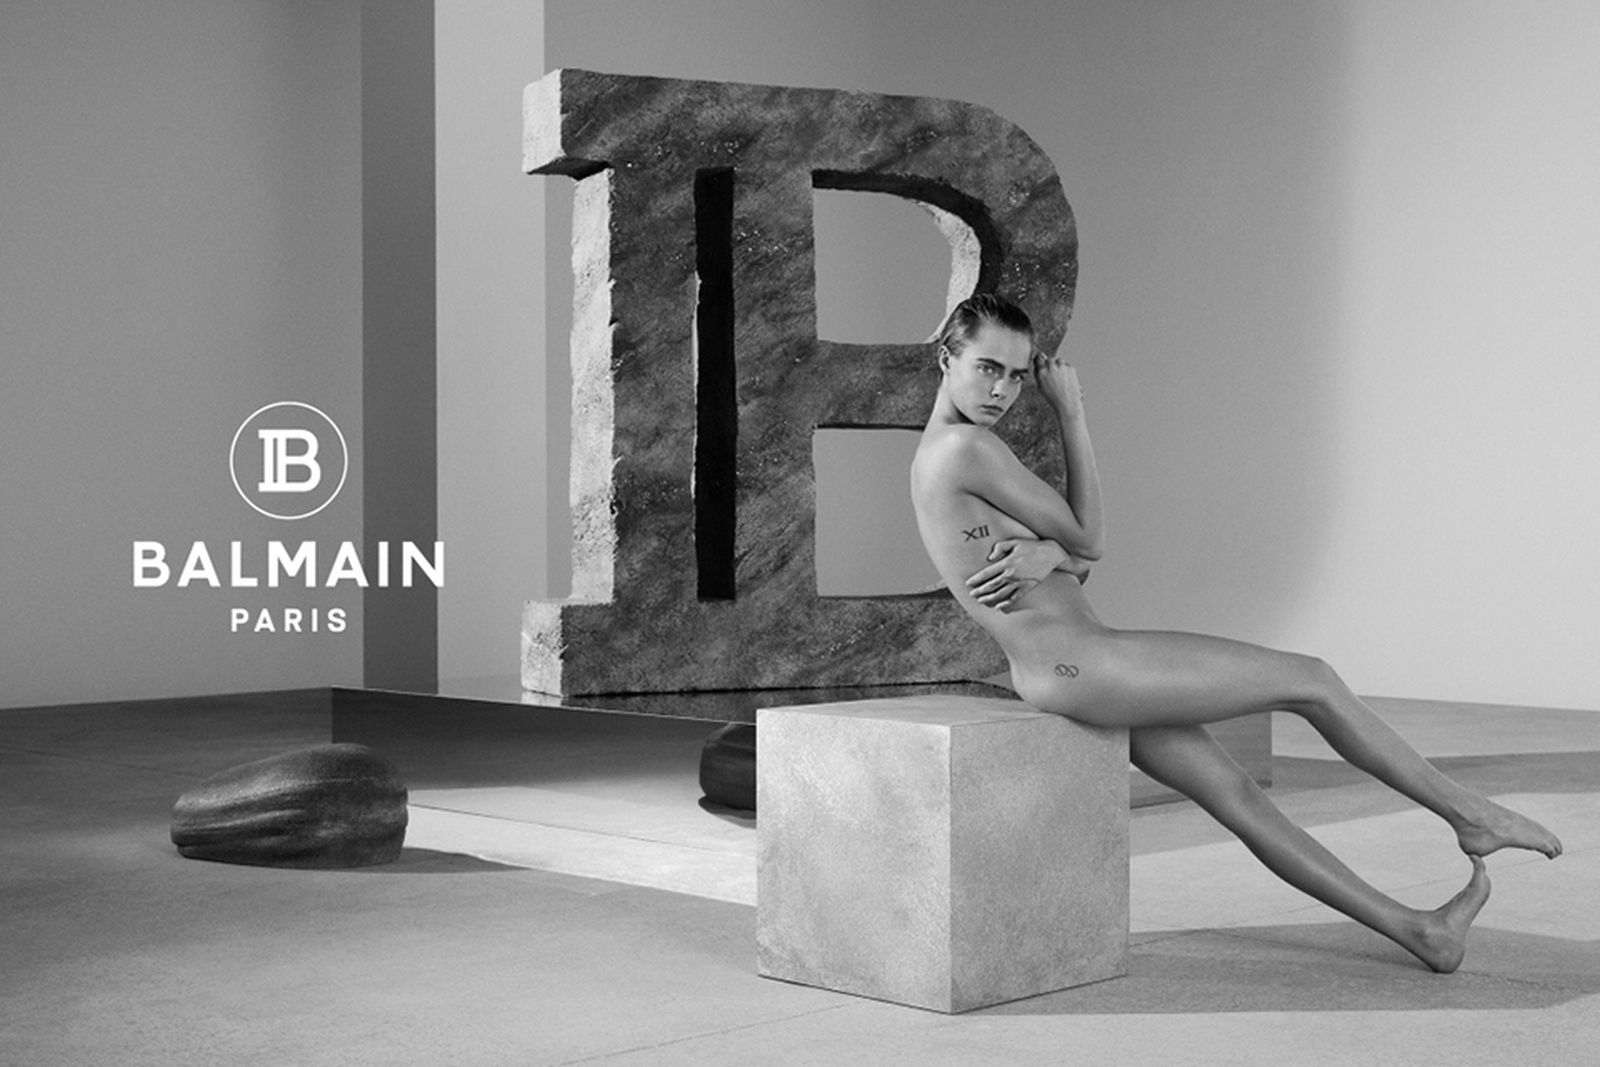 cara delevingne balmain spring 2019 campaign Olivier Rousteing